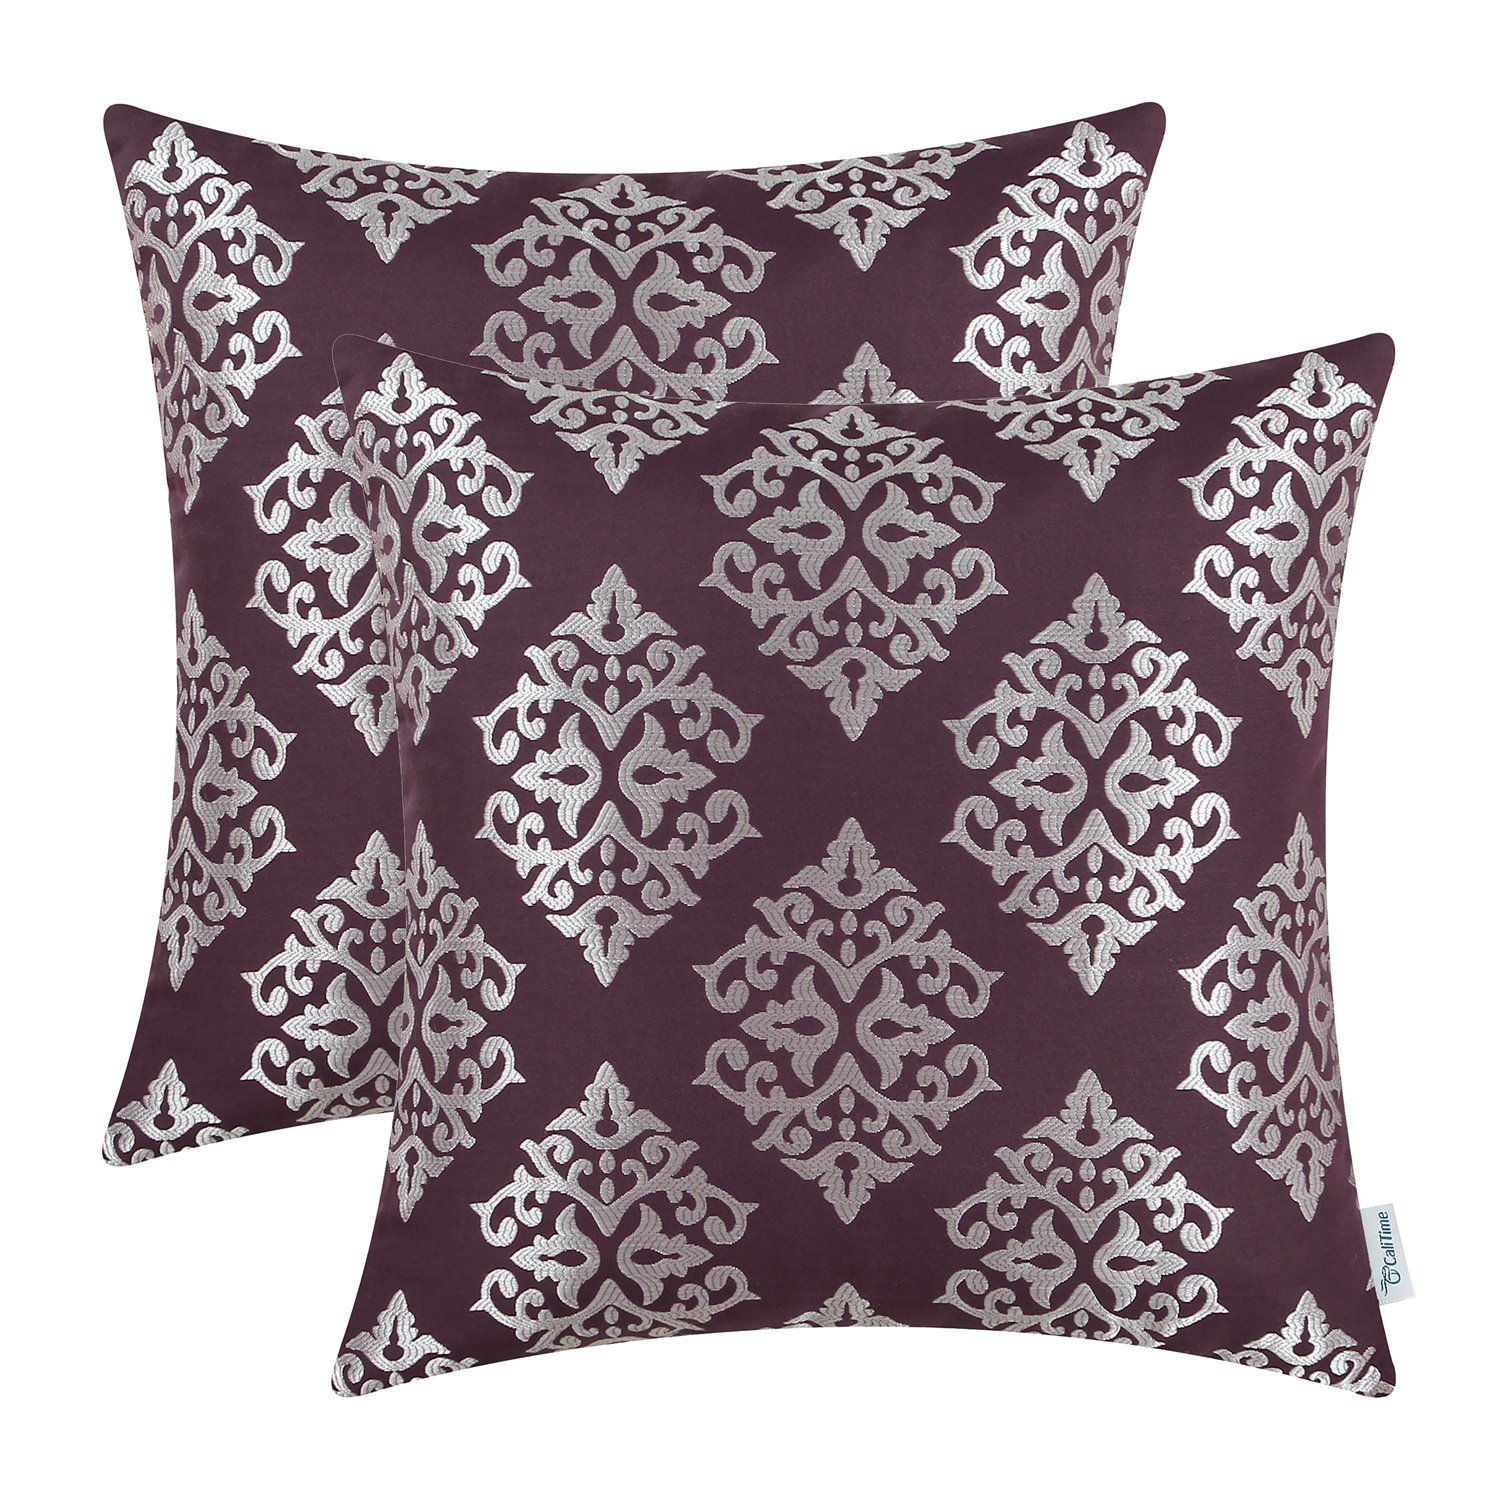 CaliTime Pack of 2 Soft Jacquard Throw Pillow Covers Cases for Couch Sofa Home Decoration Vintage Diamond Shape Damask Floral 18 X 18 Inches Aubergine